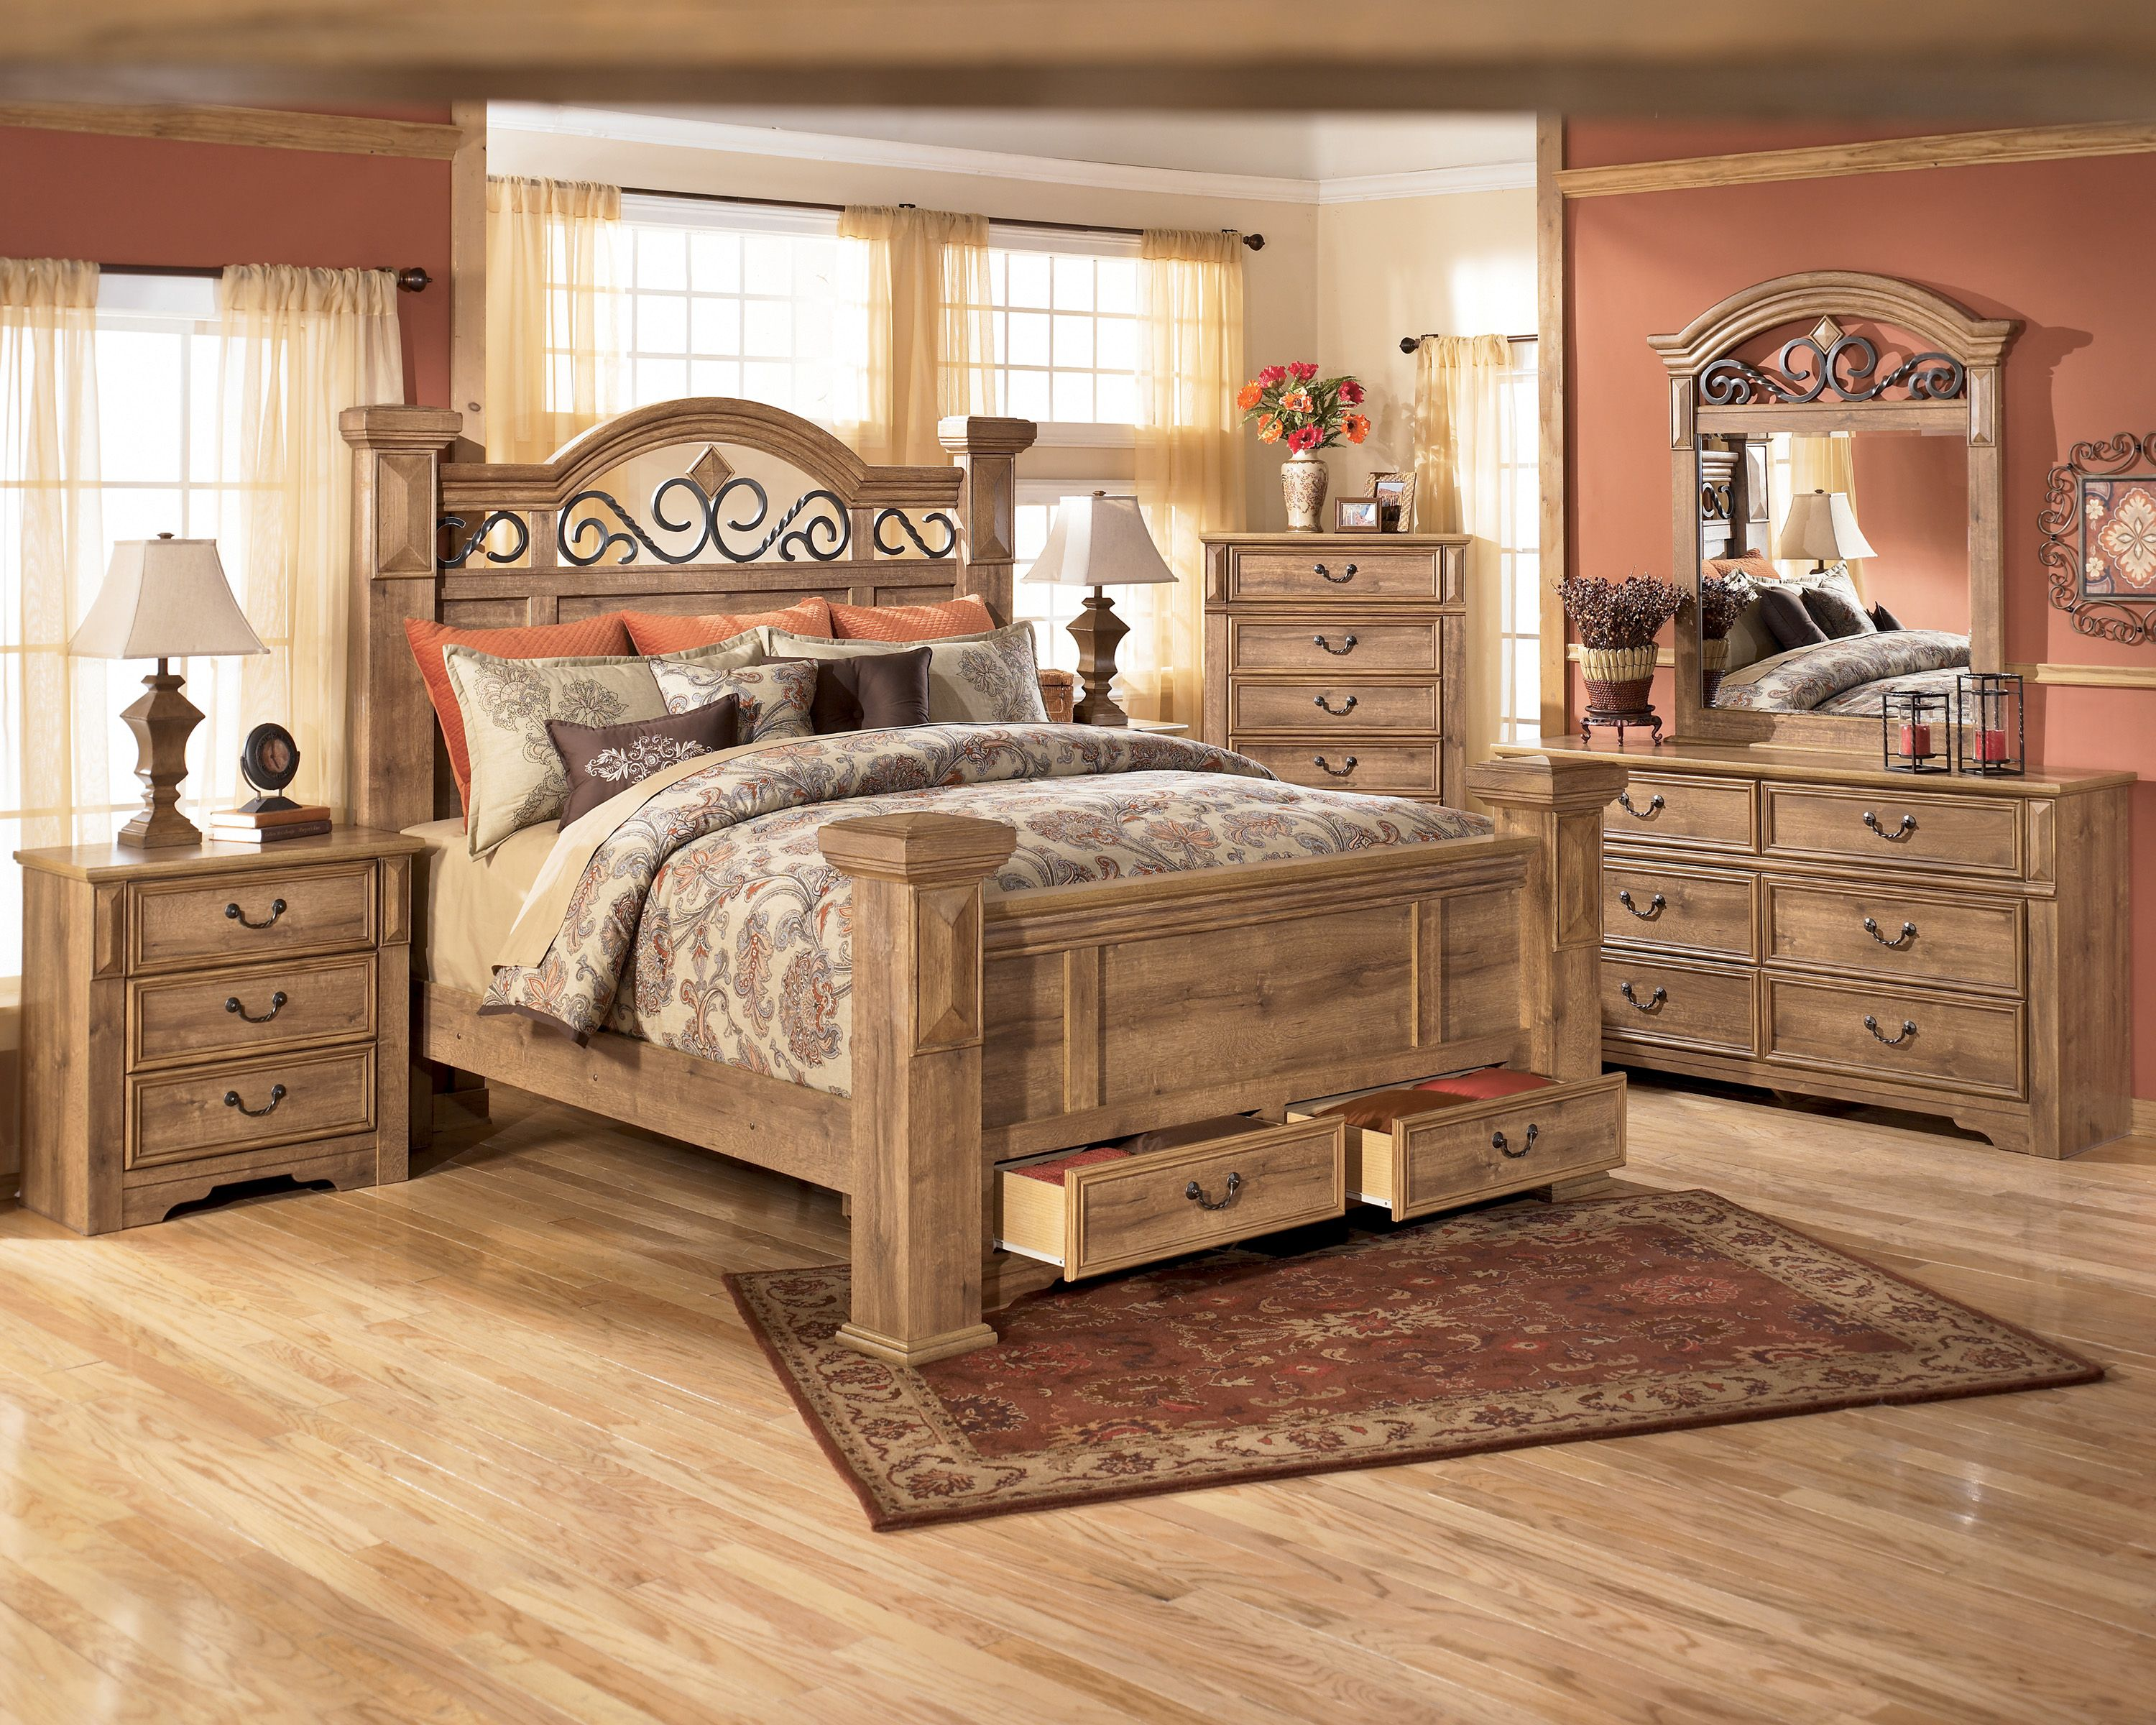 Best 25+ Rustic bedroom furniture sets ideas on Pinterest | Rustic ...